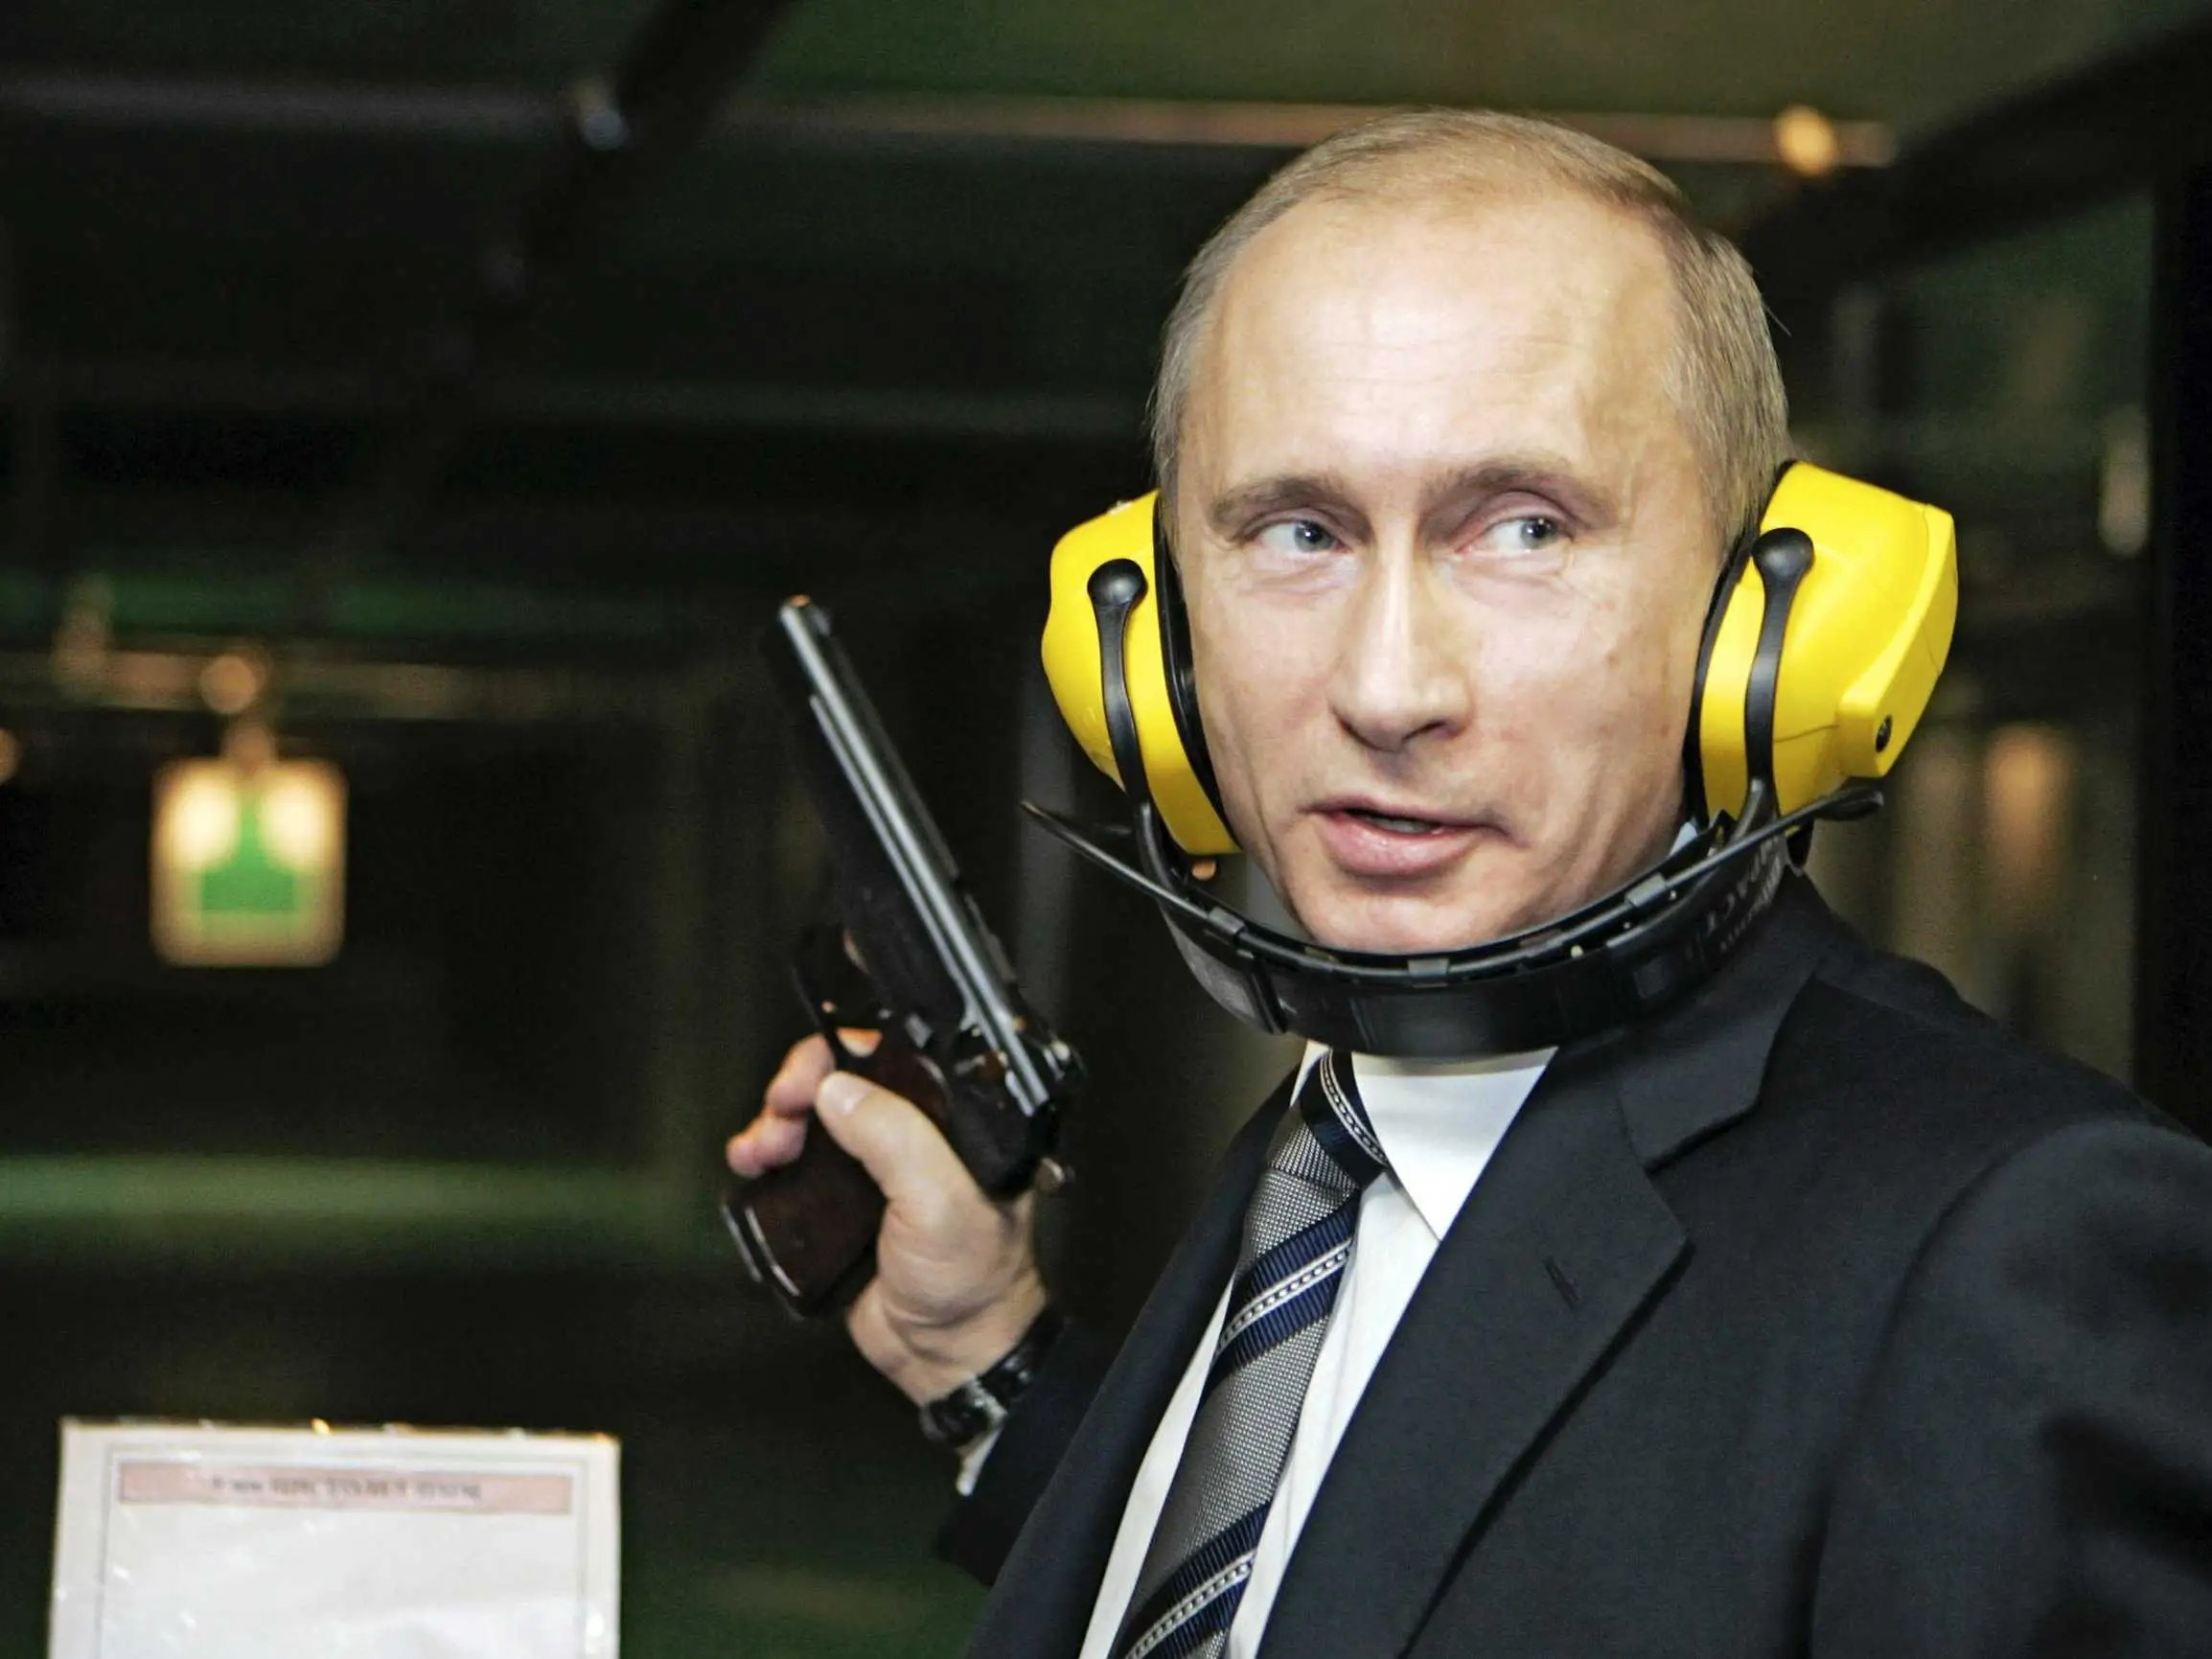 https://i1.wp.com/static4.businessinsider.com/image/5134c5b46bb3f7431f00001c-2308-1731/vladimir-putin-4.jpg